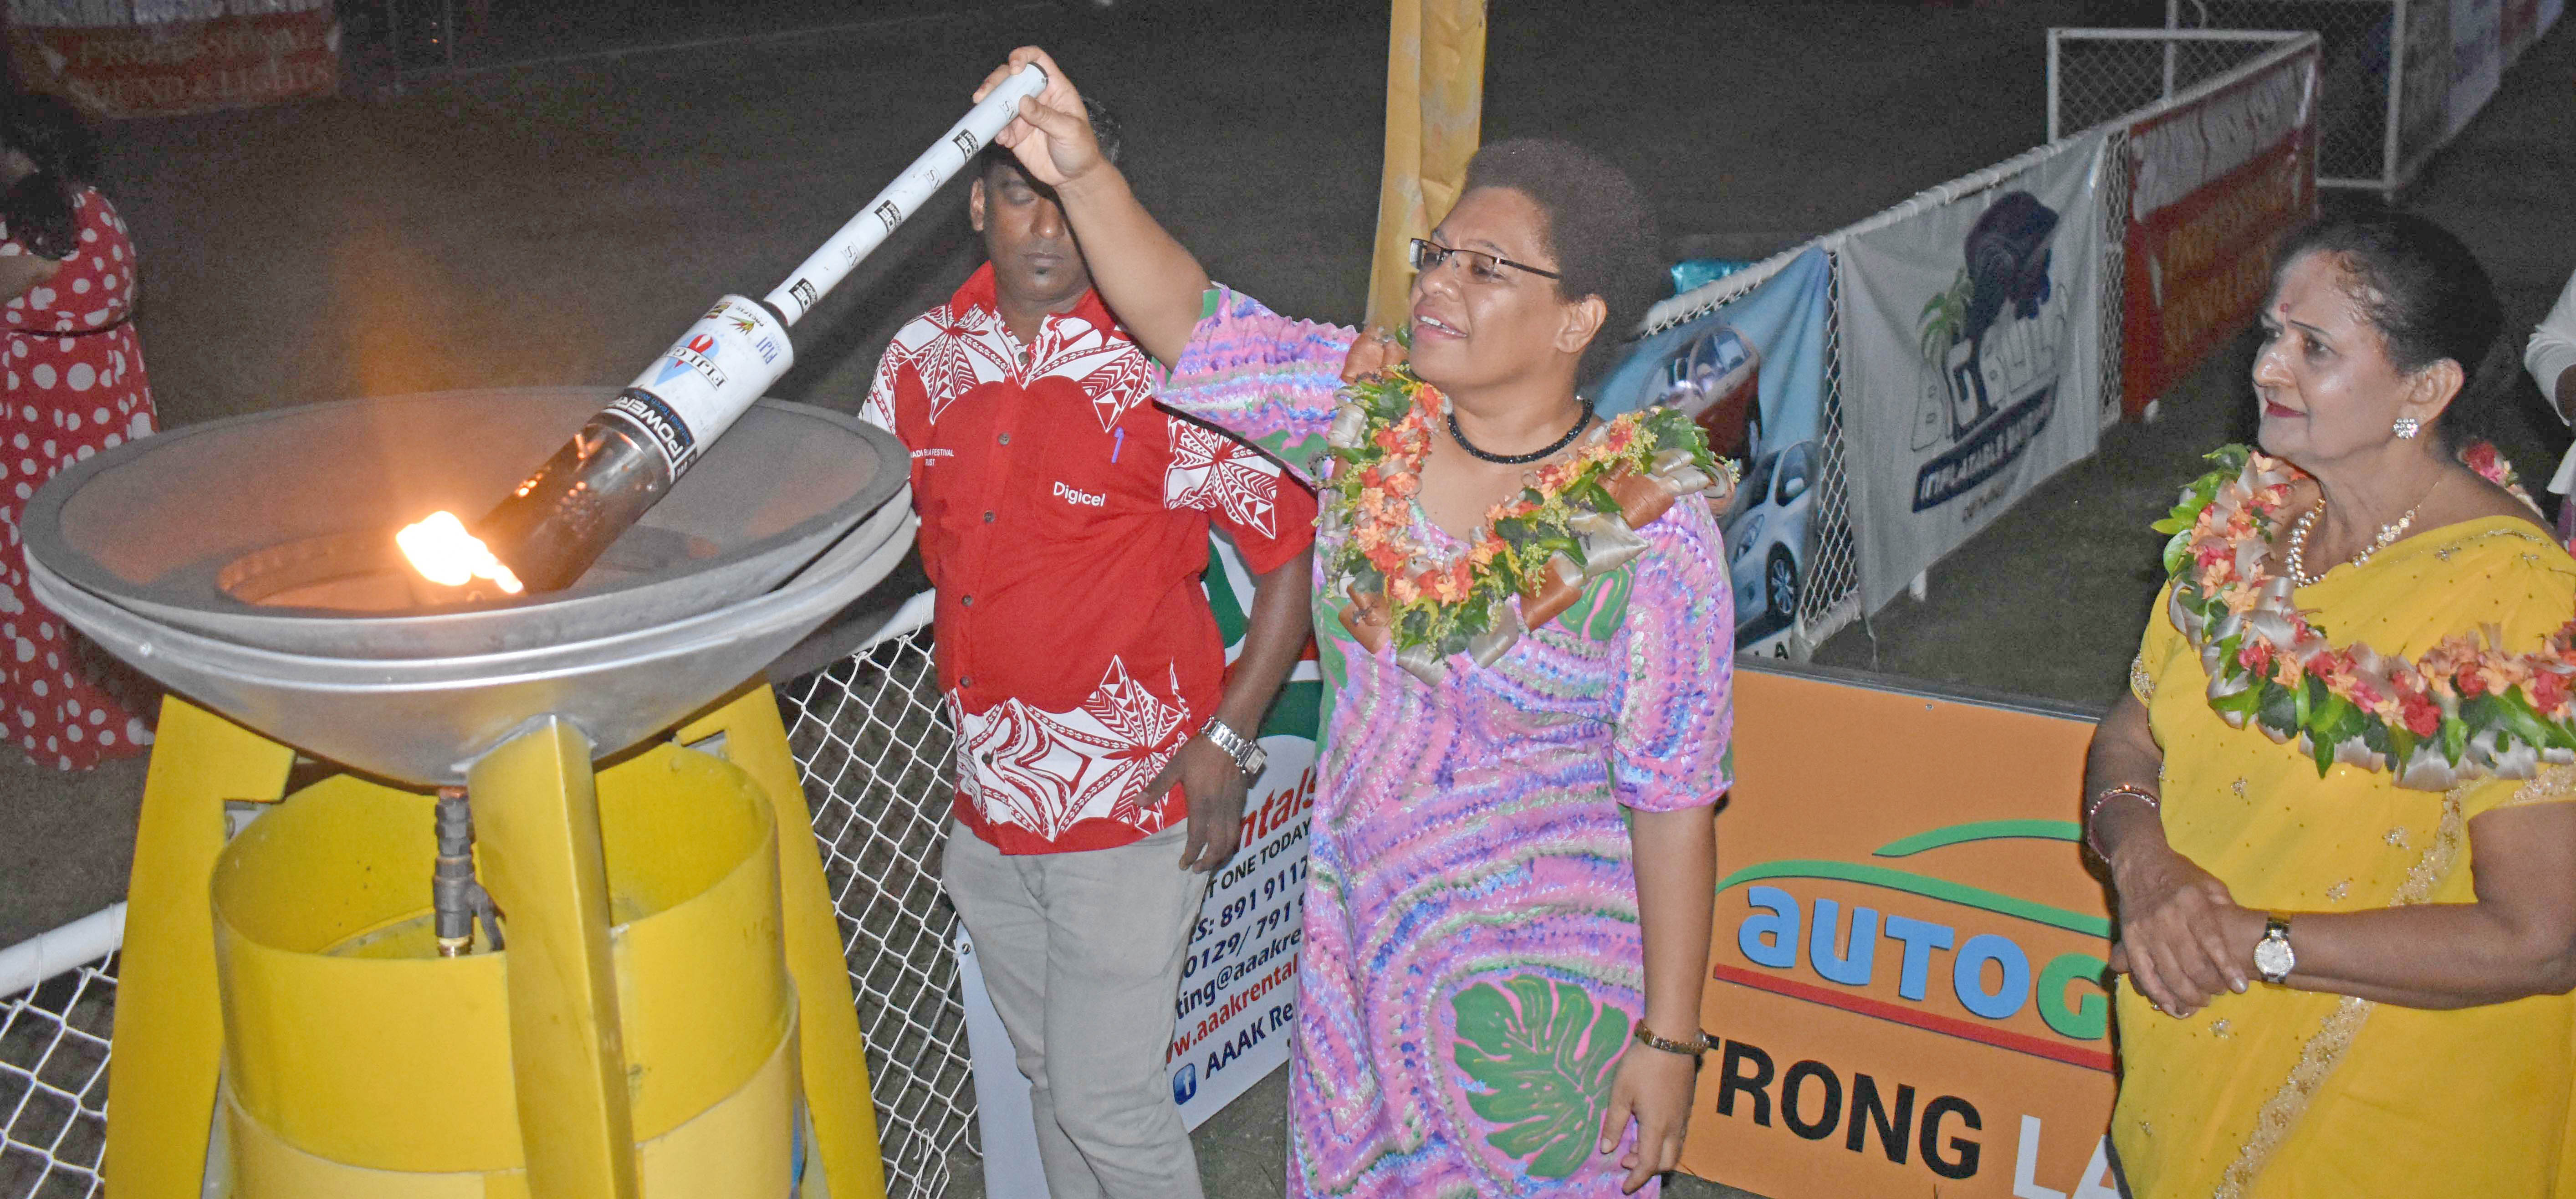 Minister for Women, Children and Poverty Alleviation Mereseini Vuniwaqa at the opening of the Digicel Nadi Bula Festival at the Prince Charles Park in Nadi yesterday. Photo: WAISEA NASOKIA